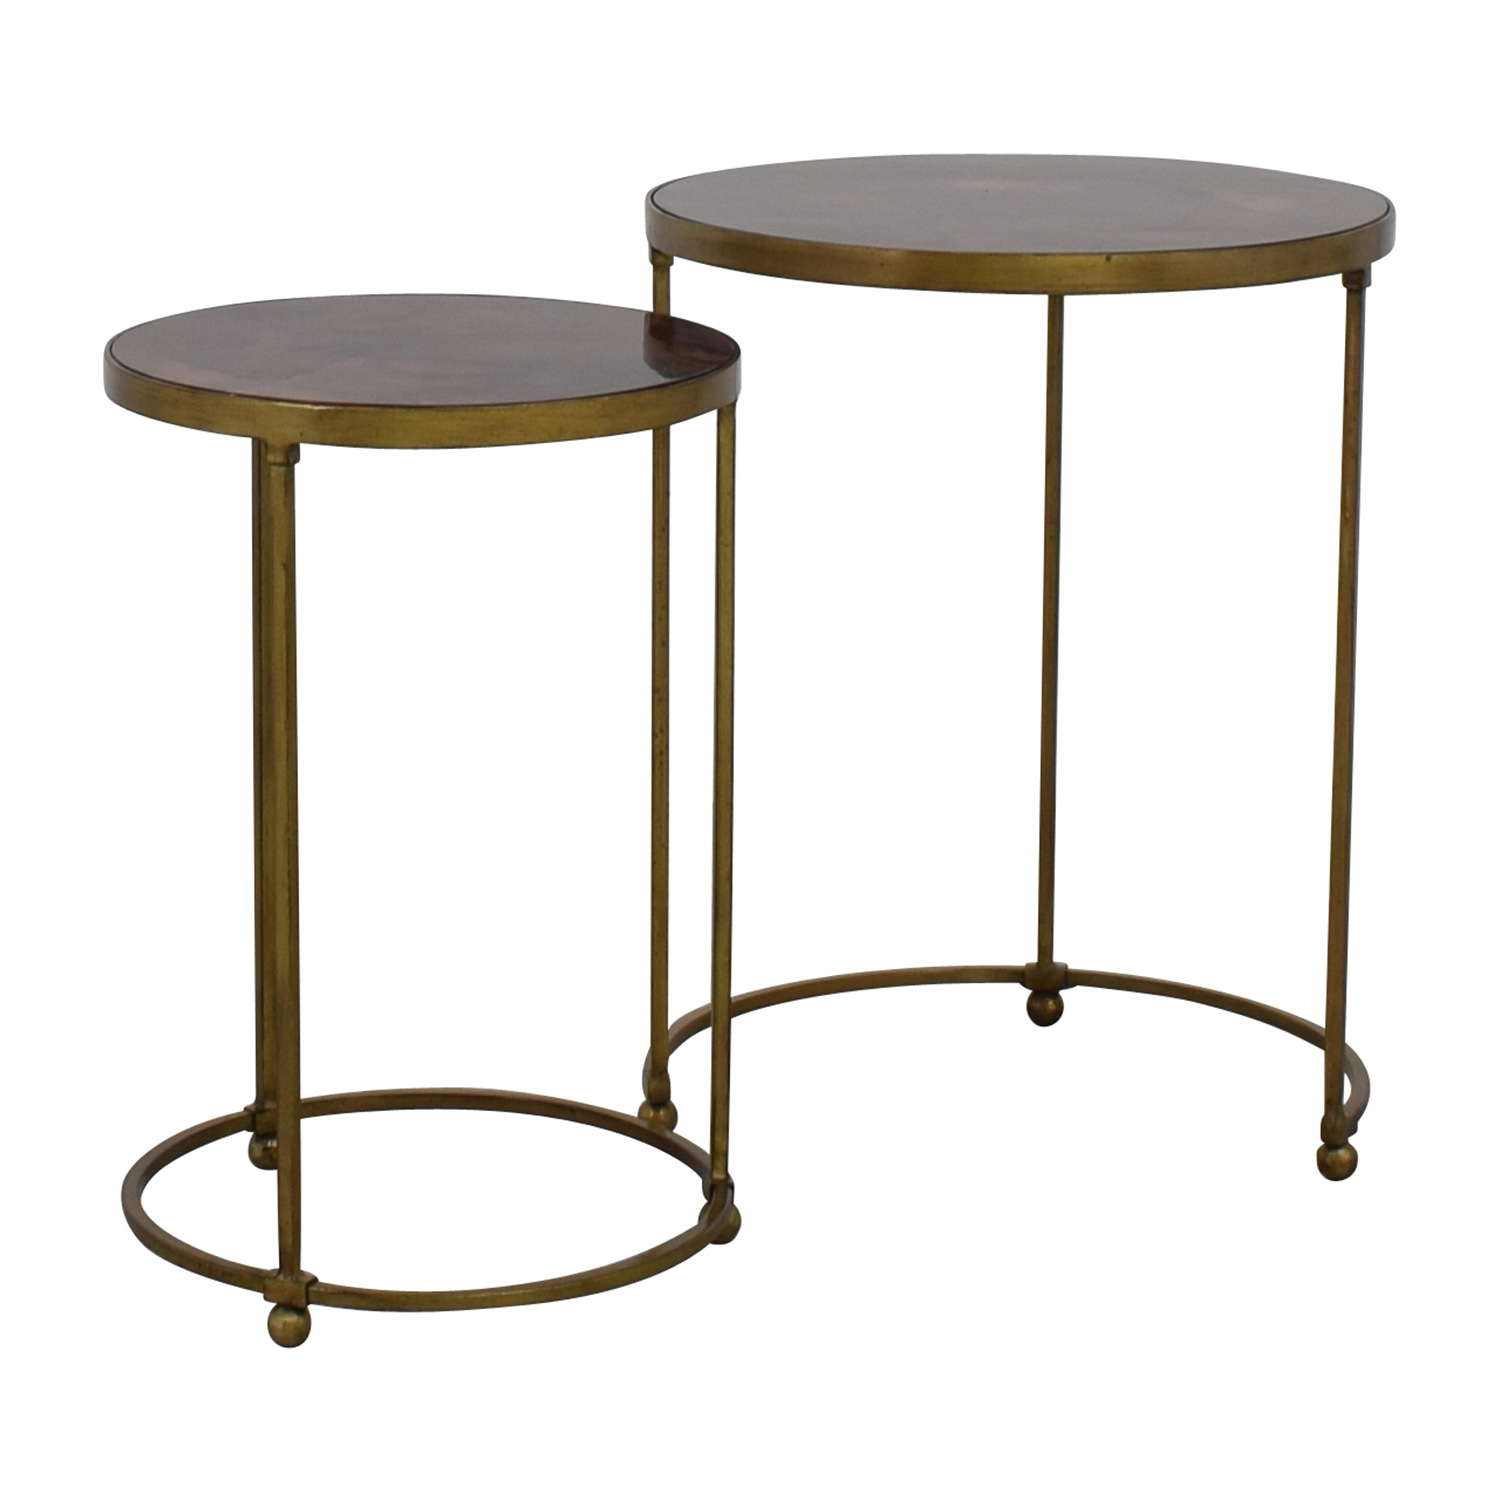 off carpet and home nesting round bronze brass accent tables table patio umbrella lights narrow cabinet with doors white lamp hexagon coffee cherry mission end timber glass drum